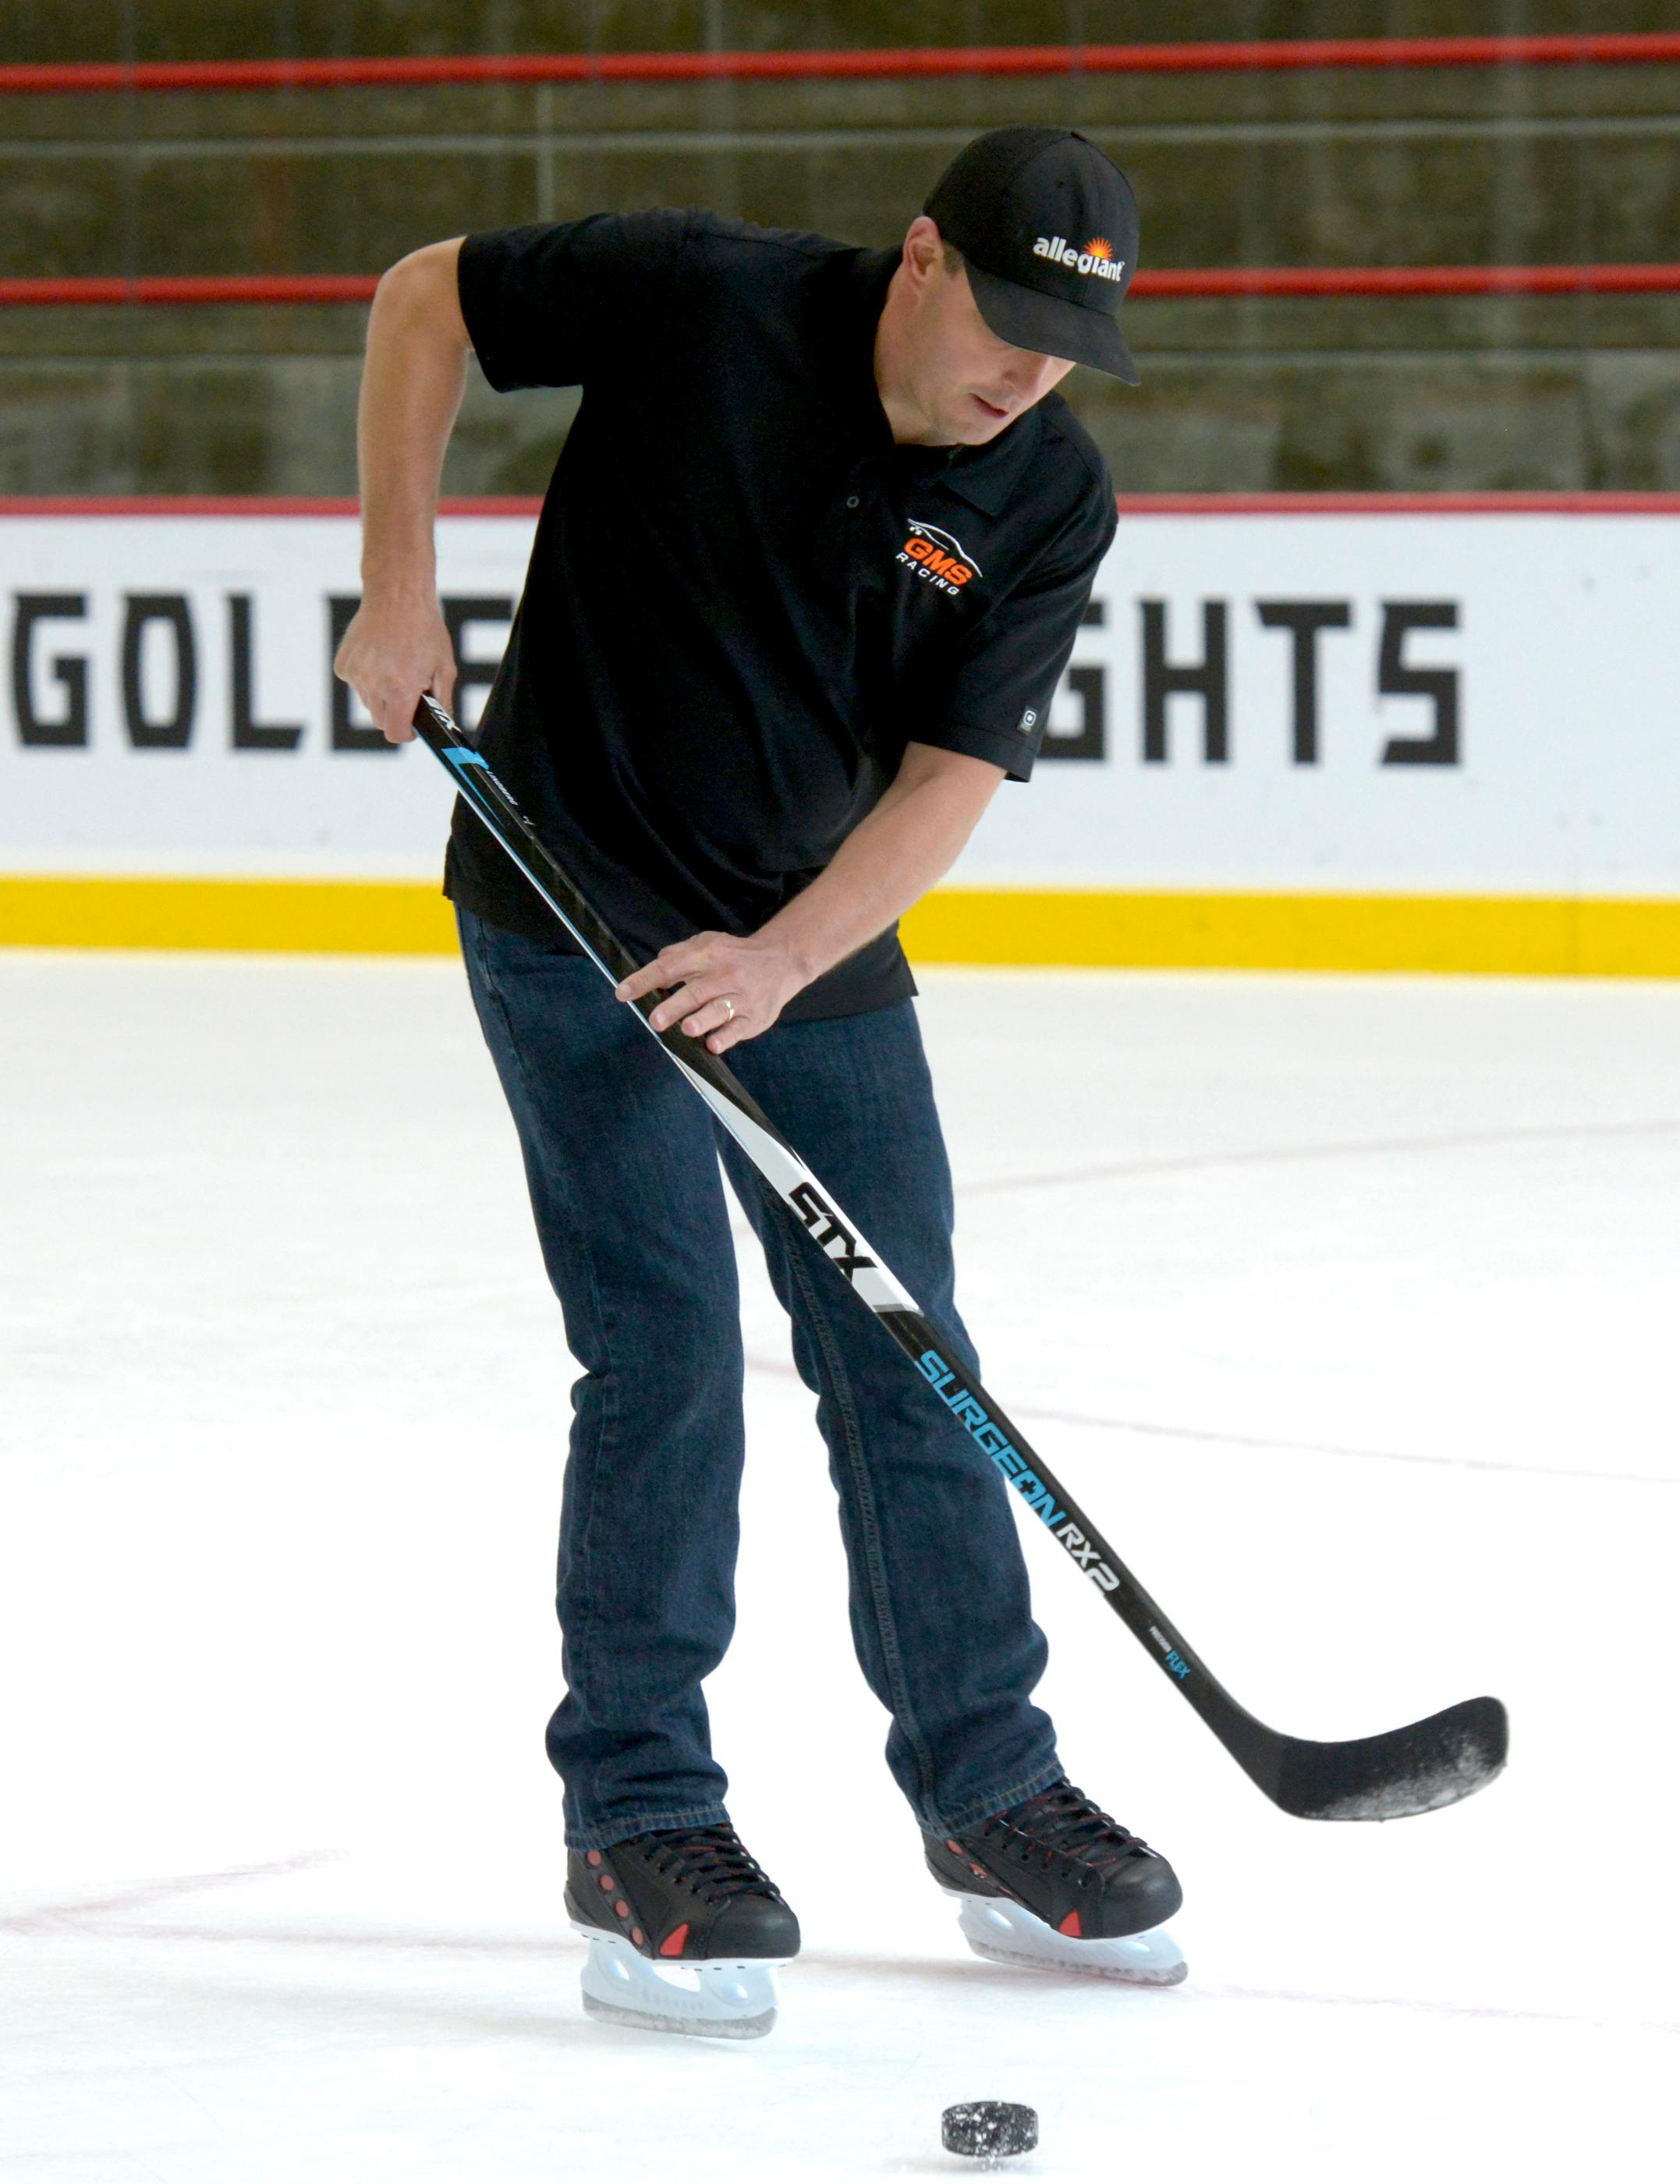 NASCAR Camping World Truck Series drivers are led through a hockey skills clinic by retired hockey professional and Golden Knights TV Analyst Shane Hnidy at City National Arena in Las Vegas. Friday, September 29, 2017. CREDIT: Glenn Pinkerton/Las Vegas News Bureau